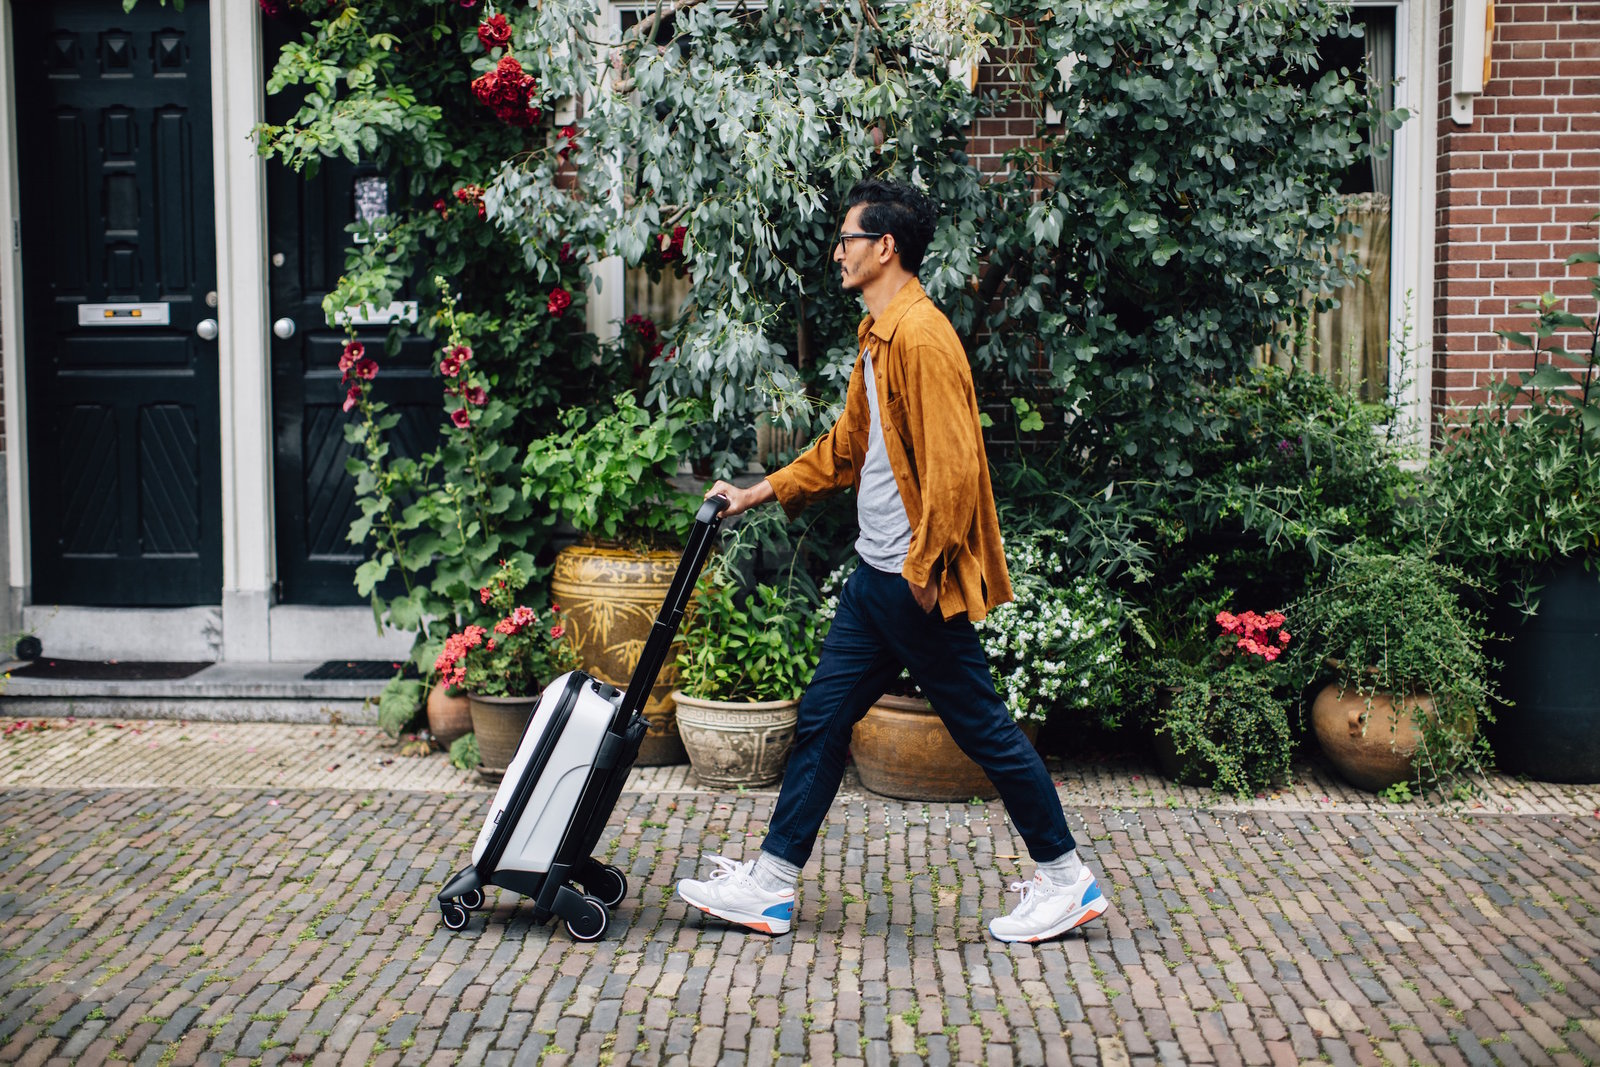 Bugaboo Unveils New Interconnecting Luggage System